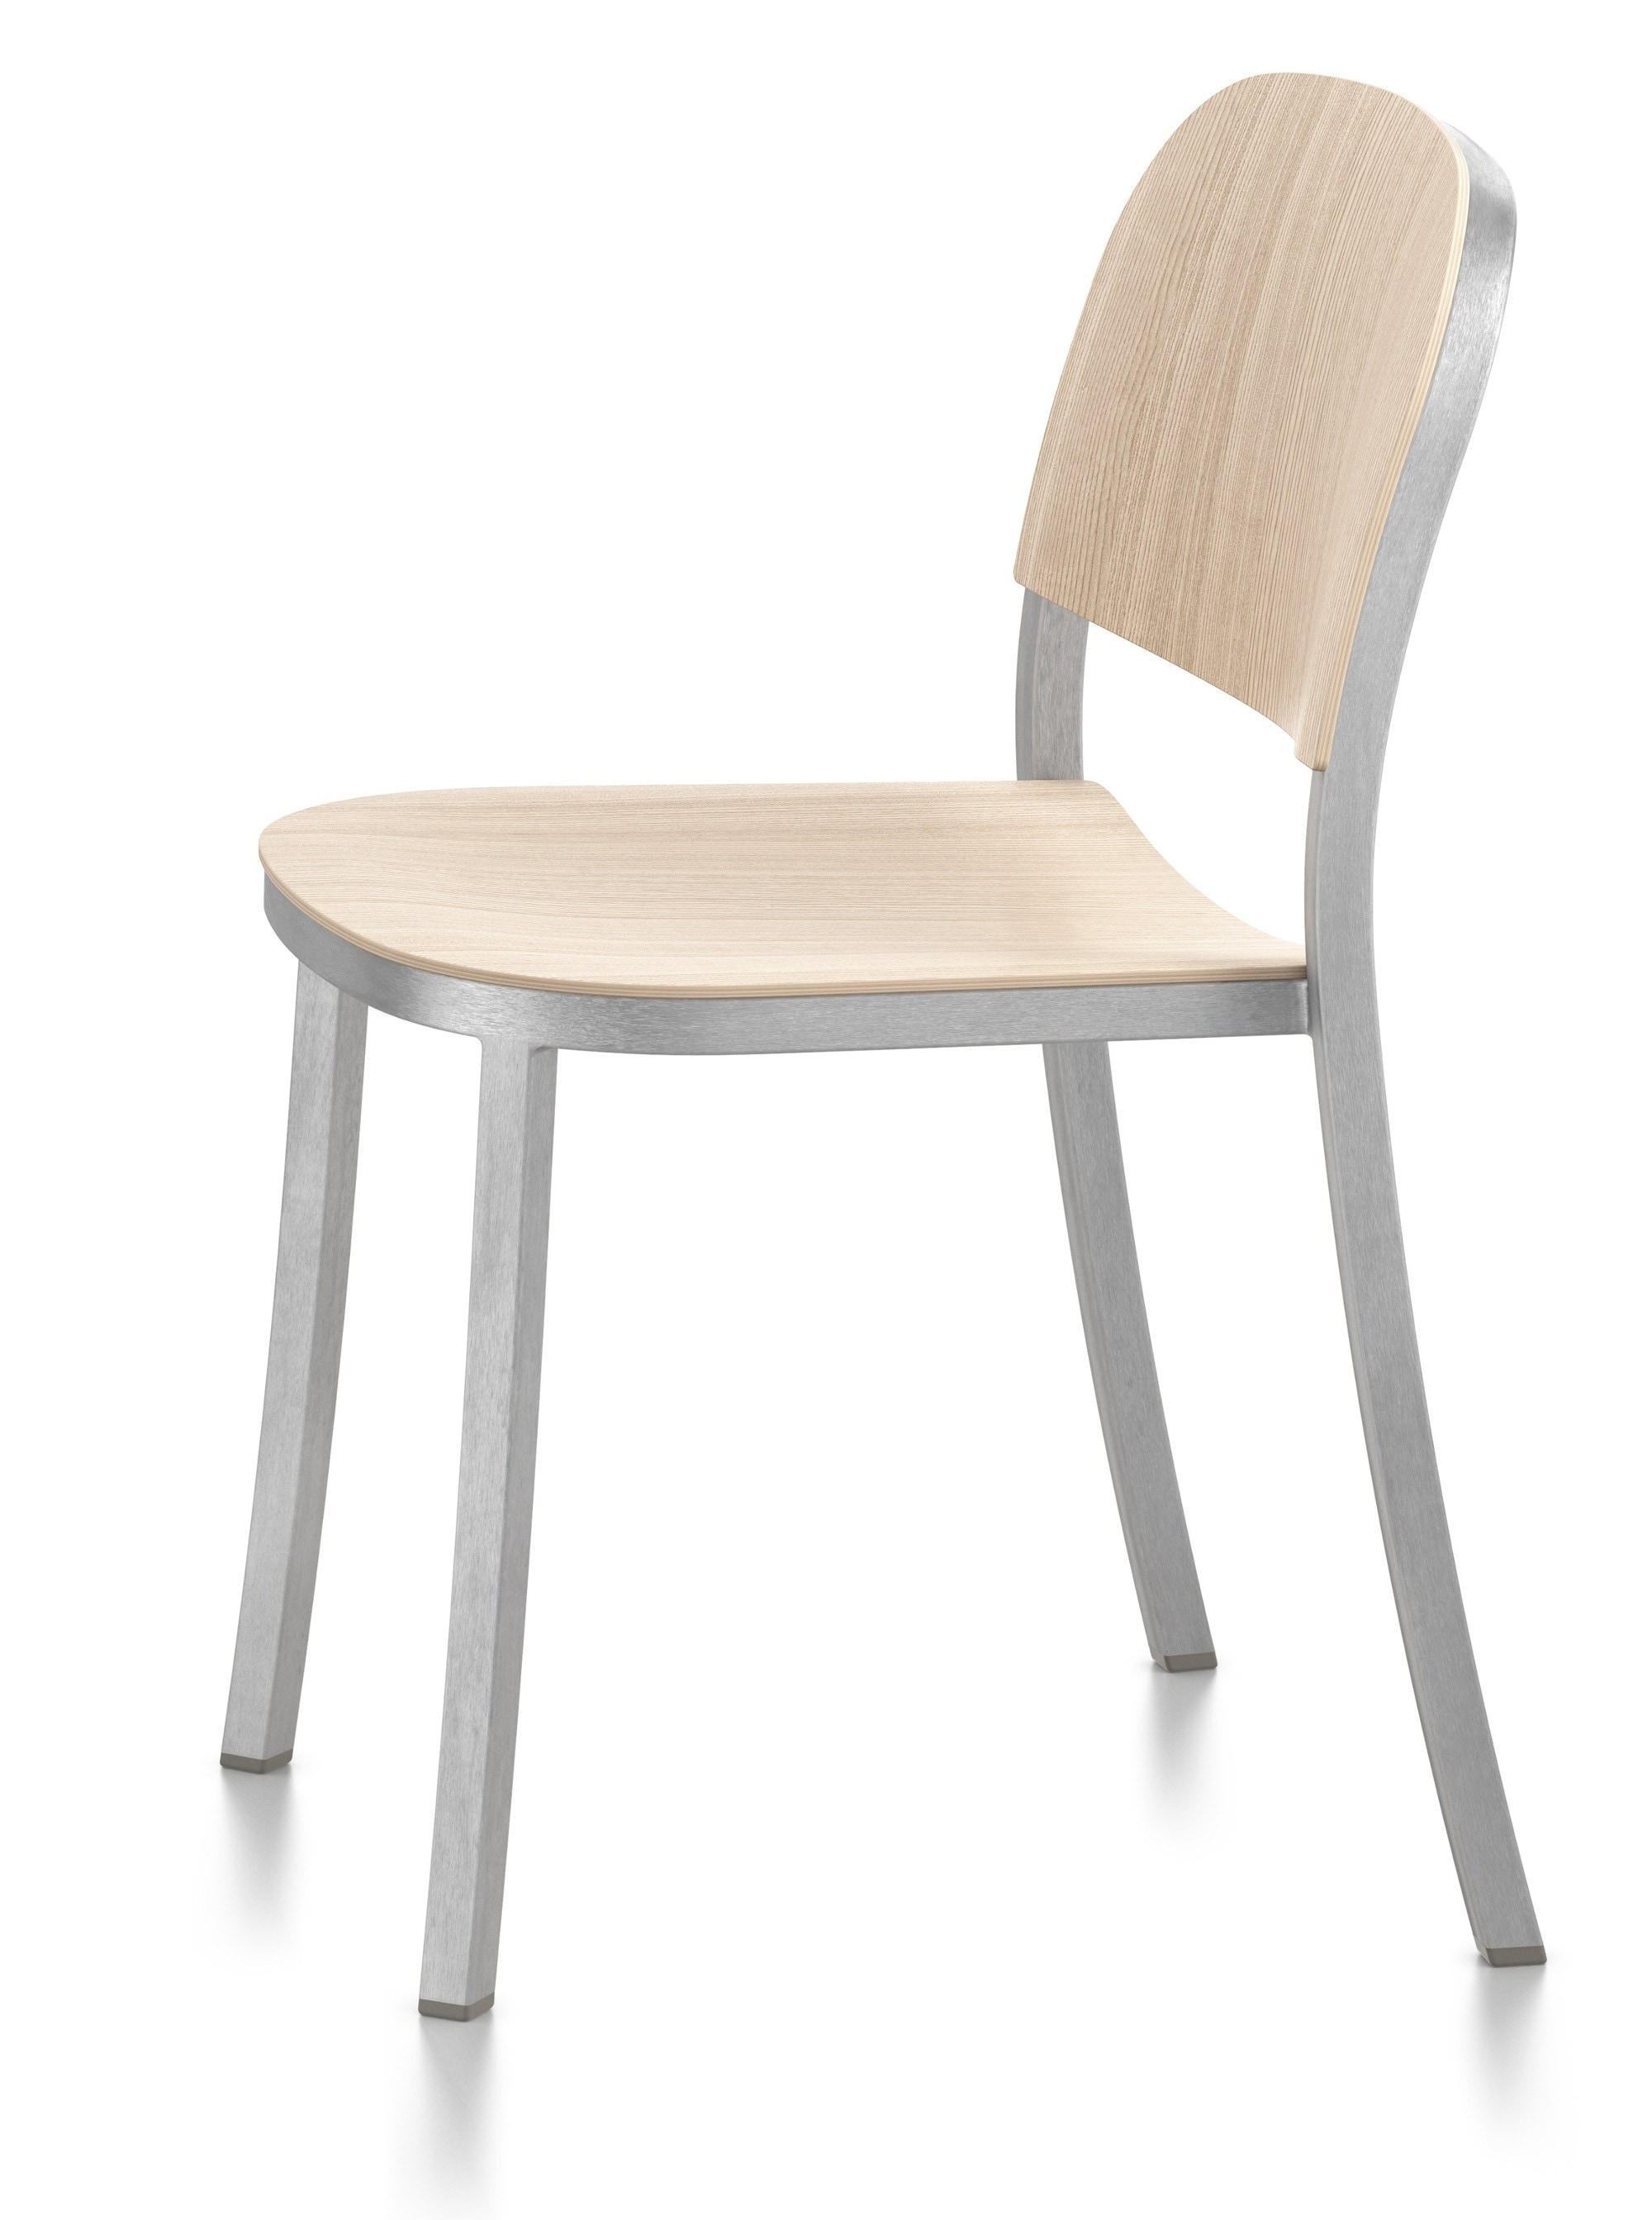 Emeco 1 INCH Stacking Side Chair By Jasper Morrison